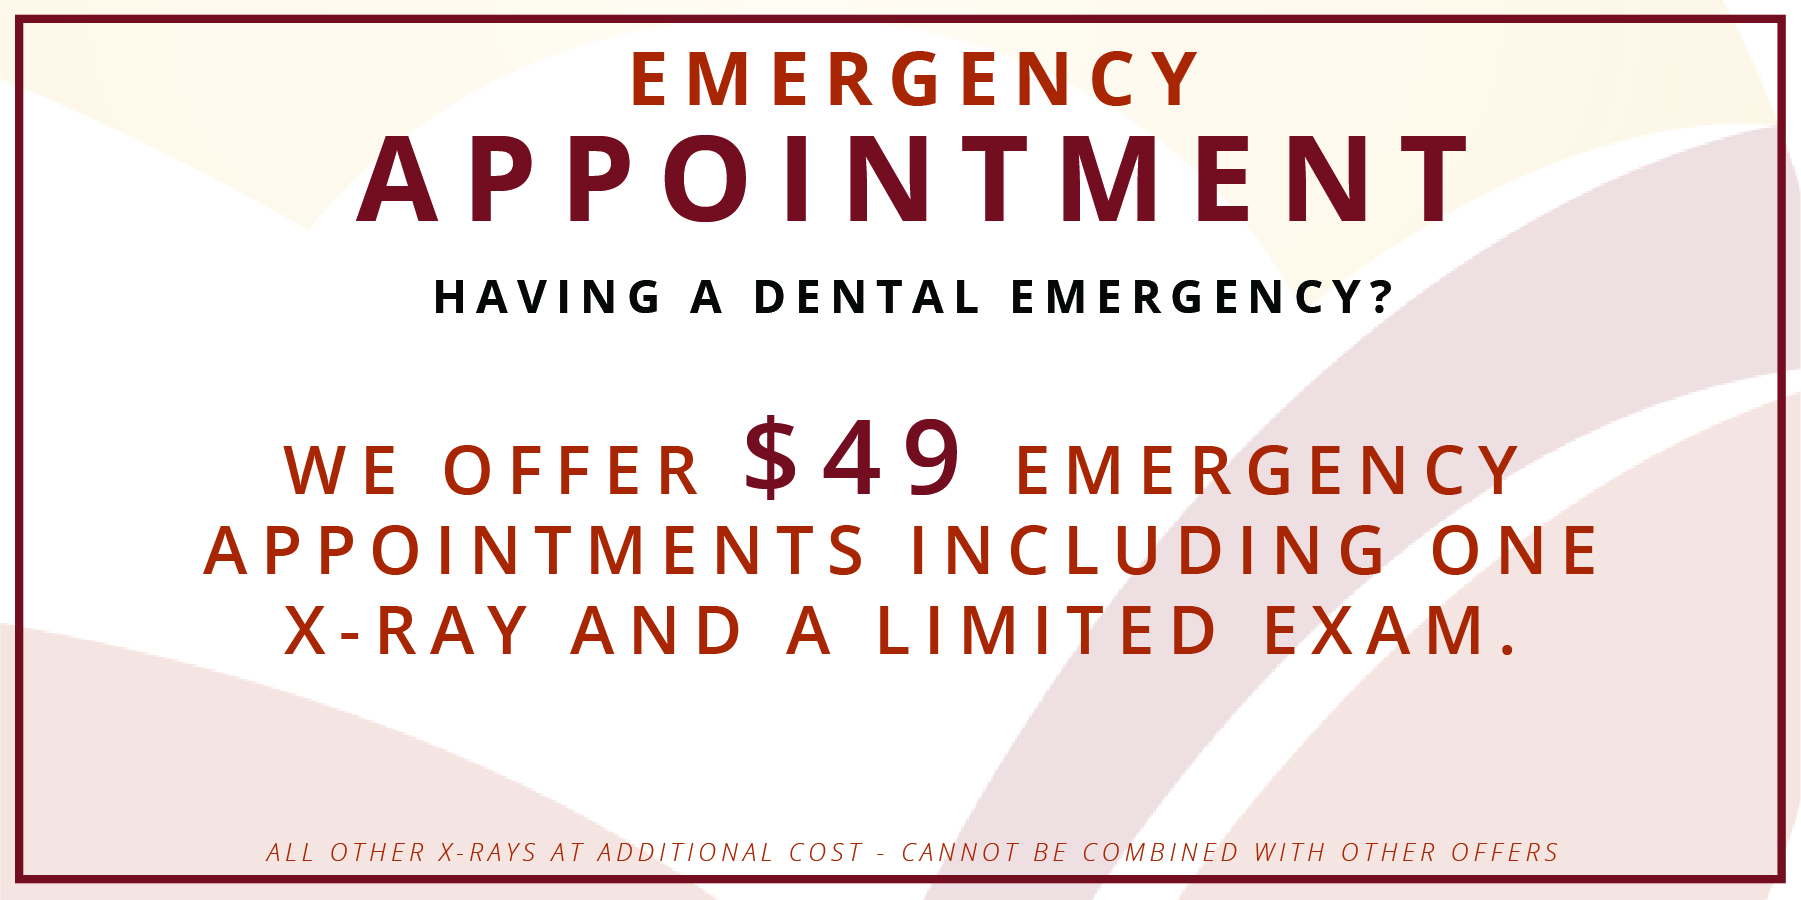 emergency appointment coupon